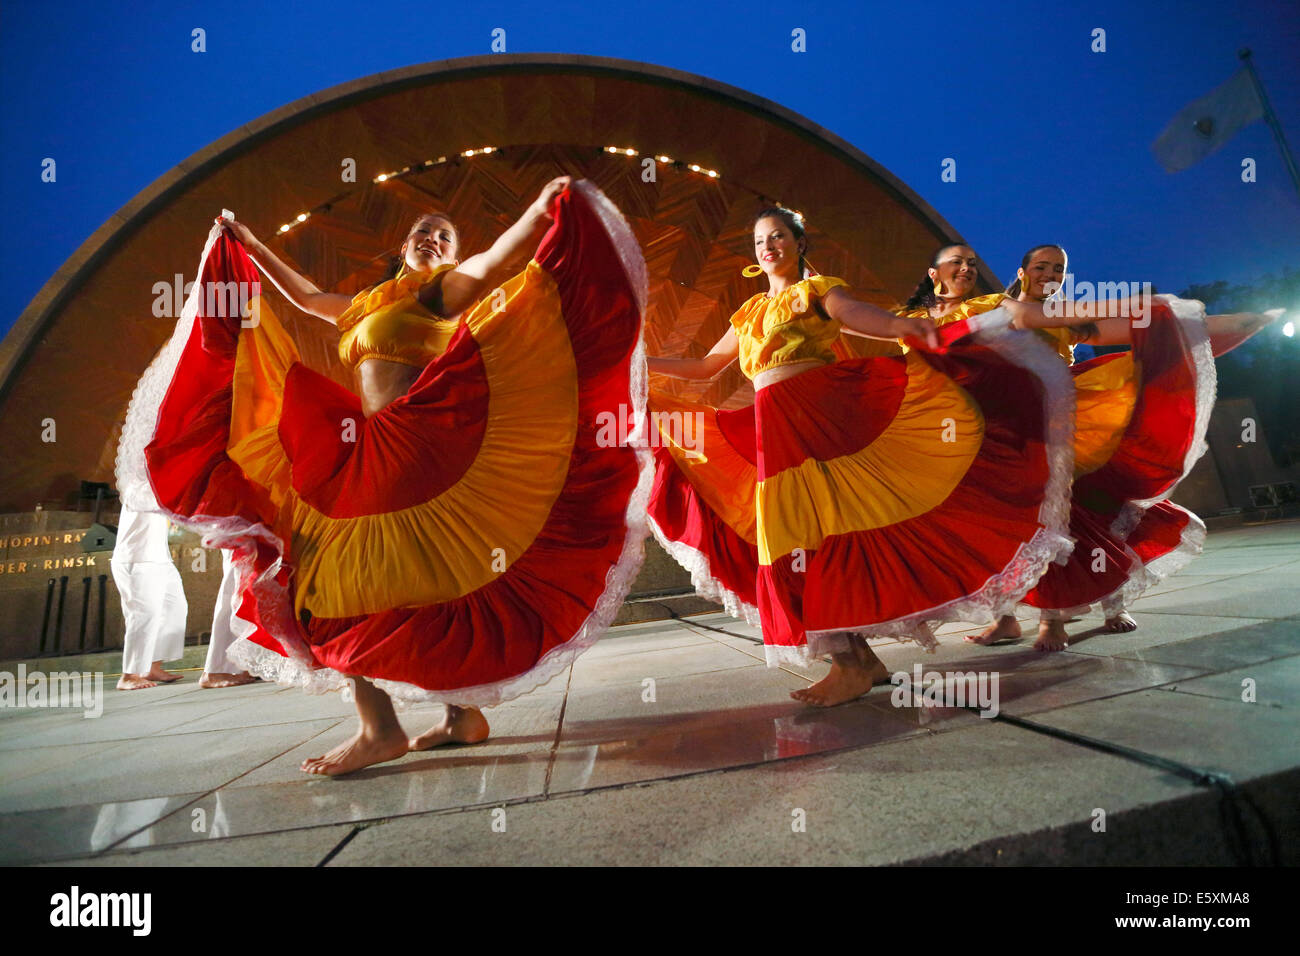 BHZ Latin American dancers performing in front of the Hatch Shell on the Esplanade, Boston, Massachusetts, USA - Stock Image